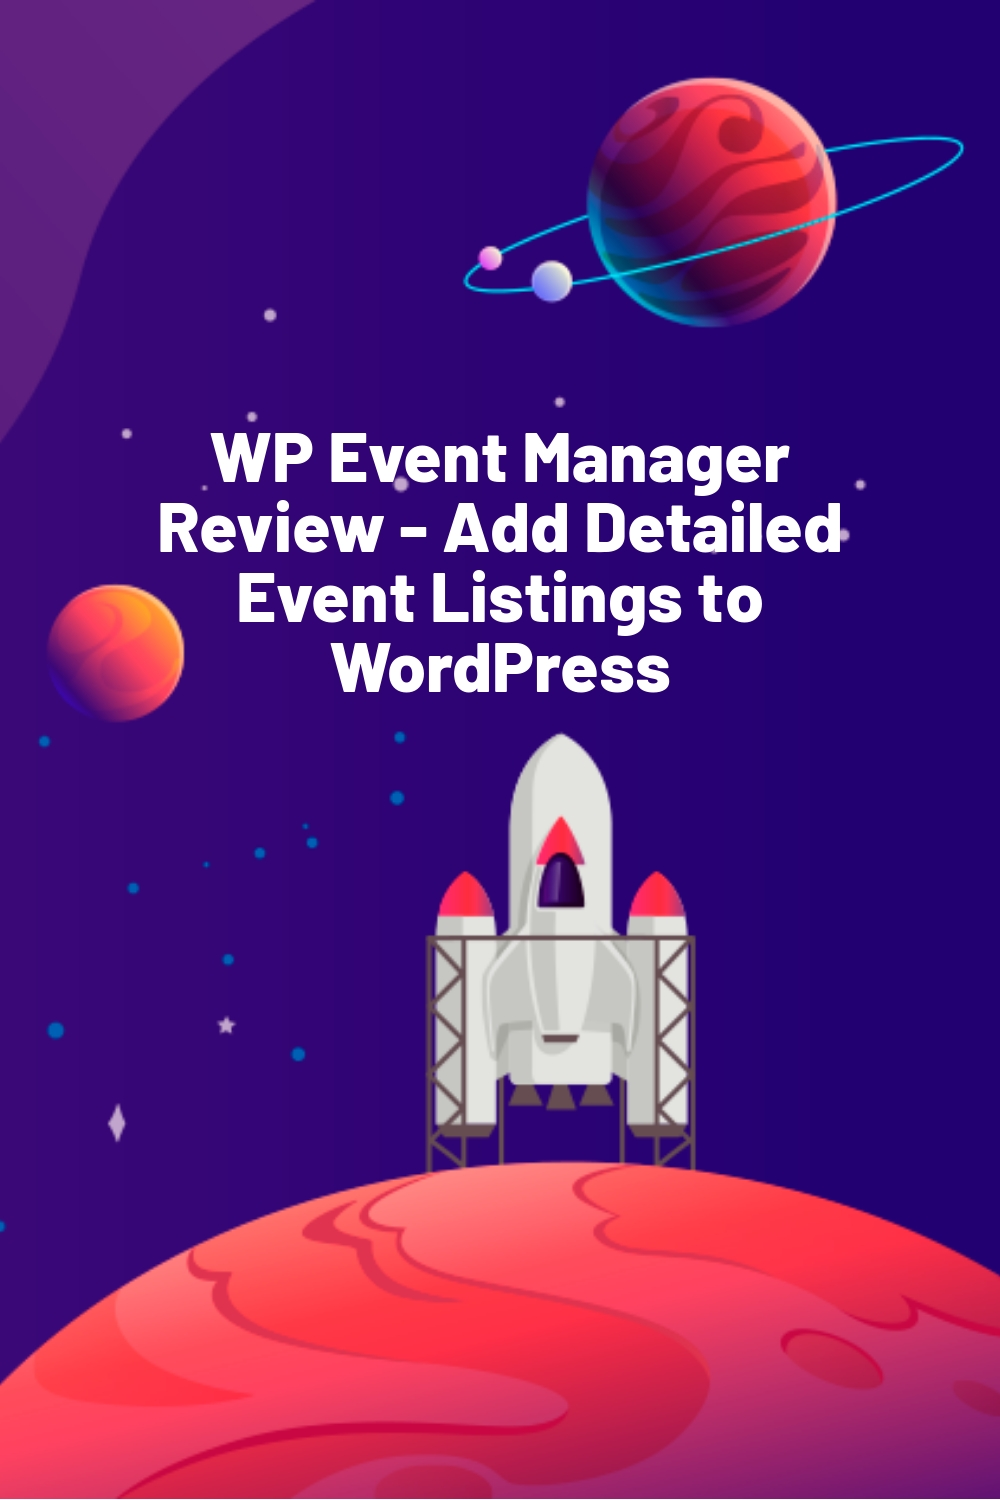 WP Event Manager Review – Add Detailed Event Listings to WordPress